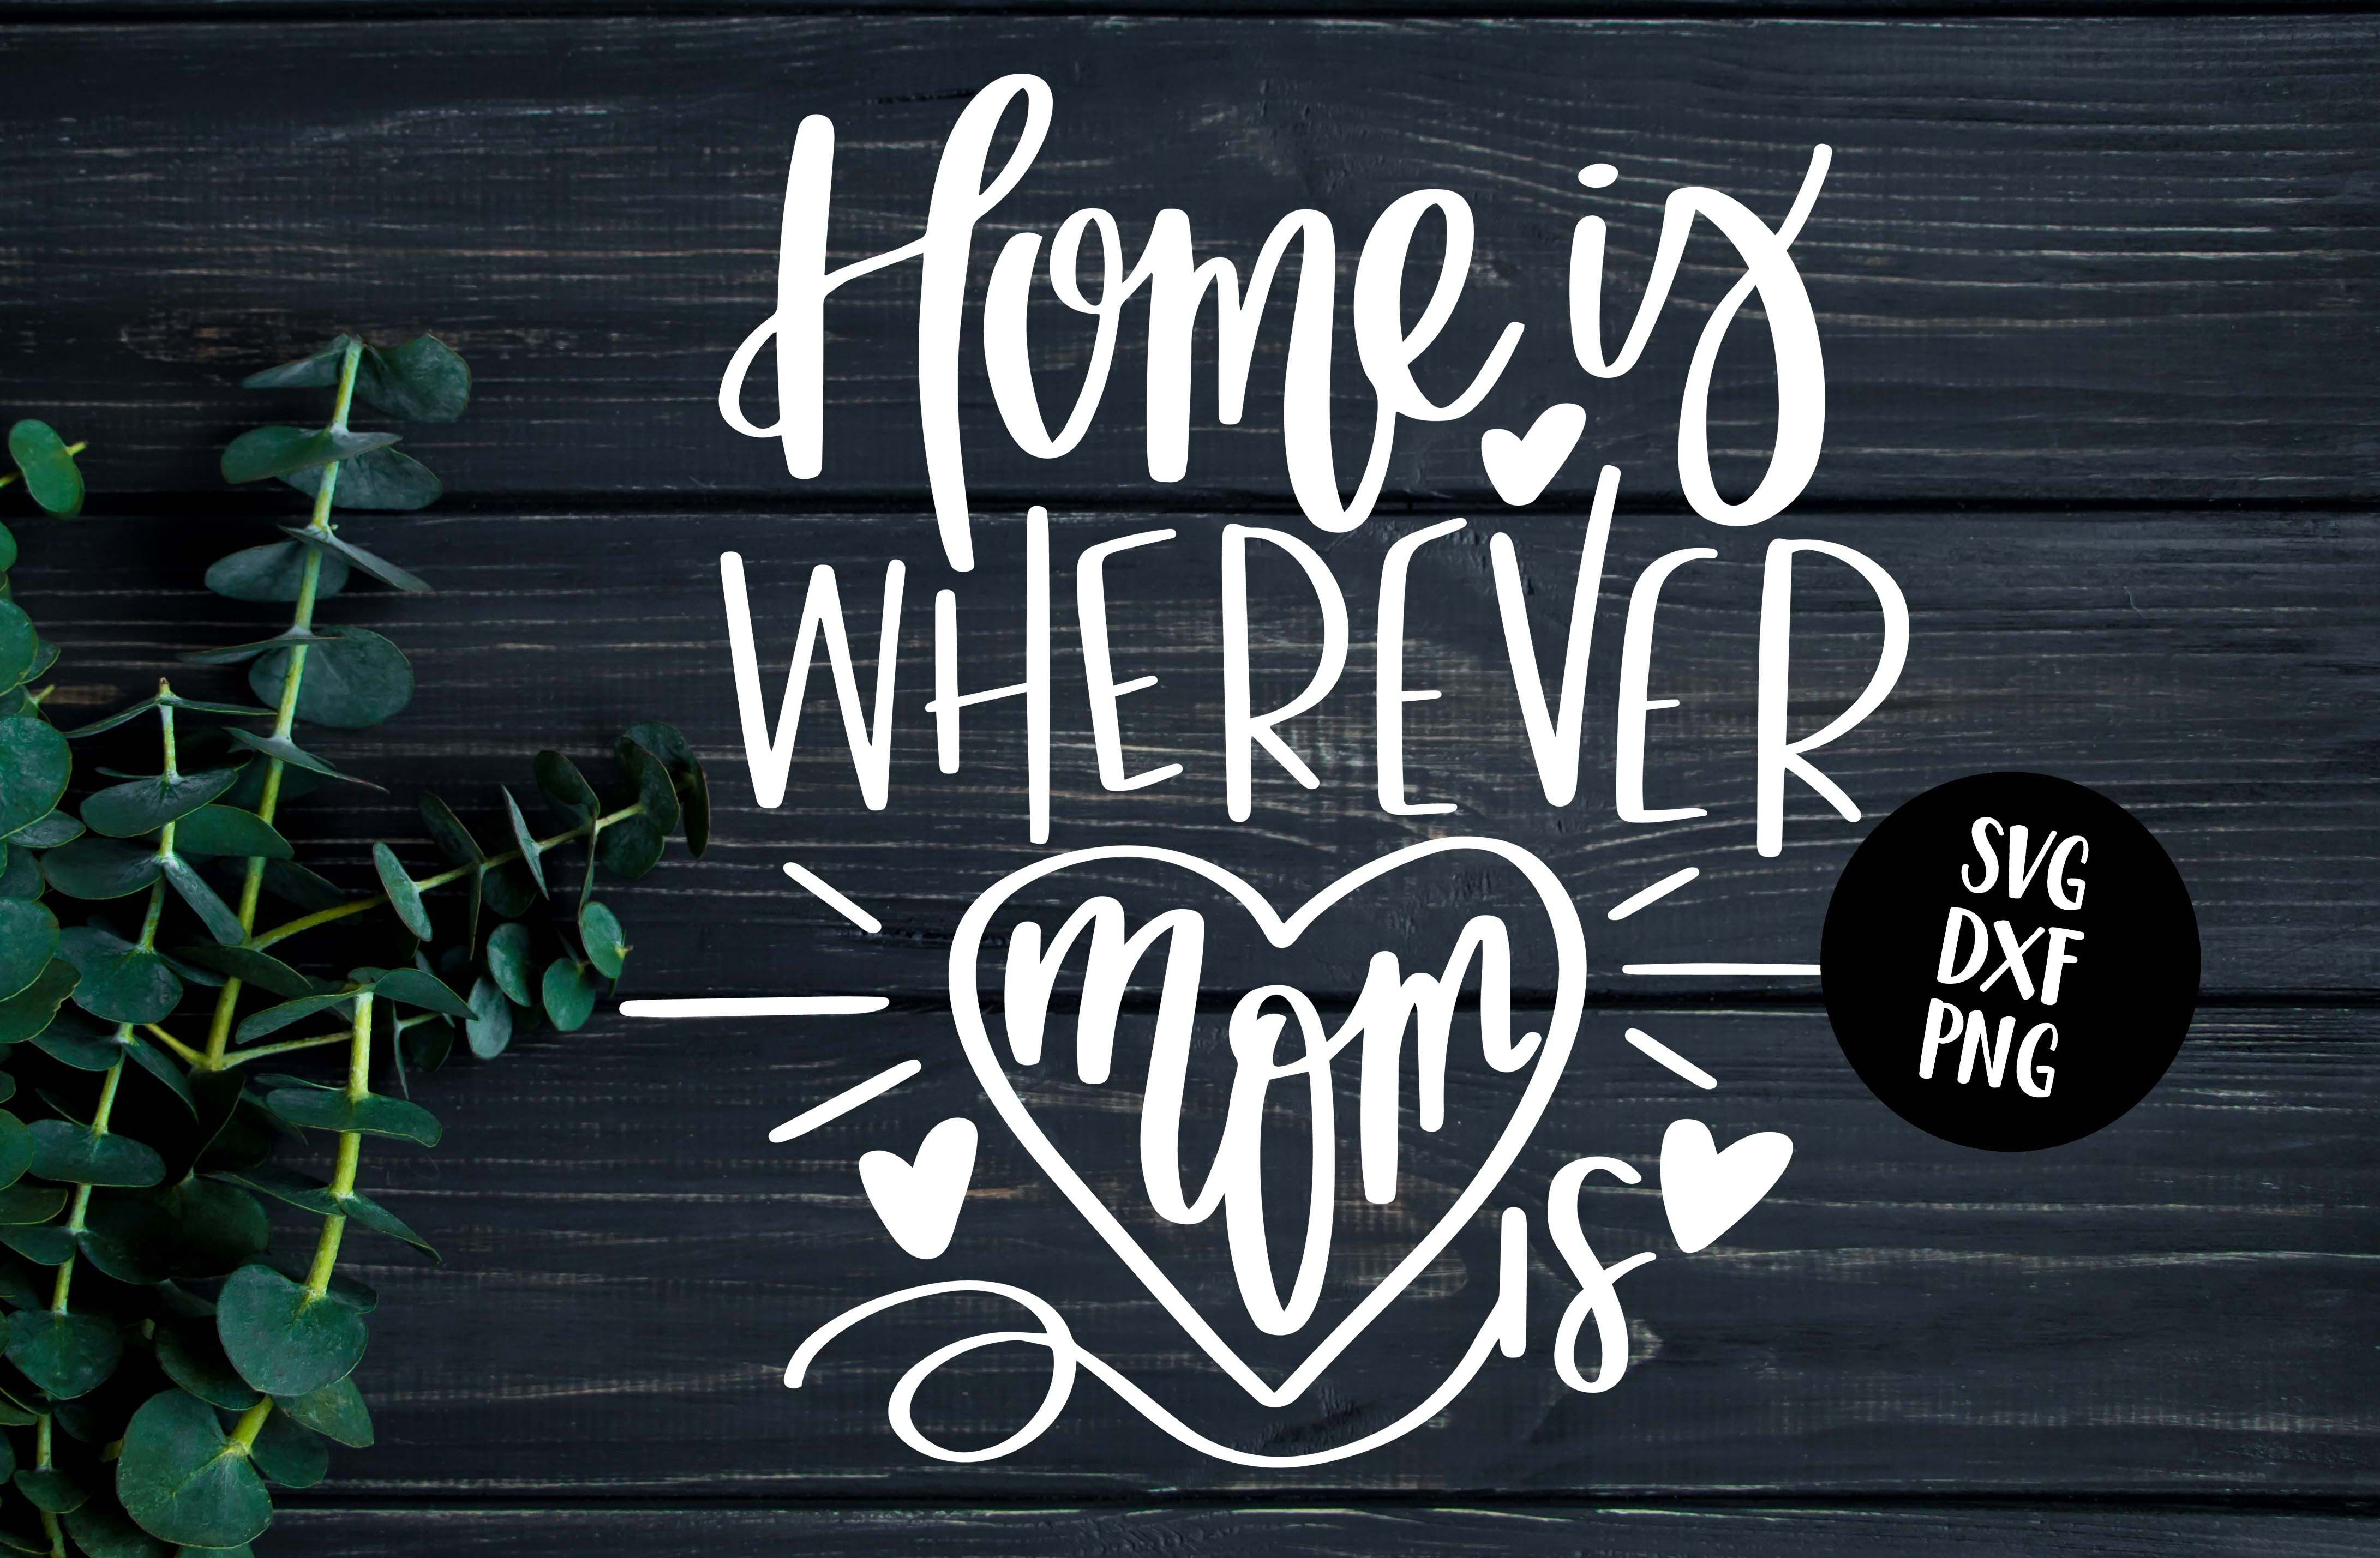 Home Is Wherever Mom Is Hand Lettered Svg By Svgfox